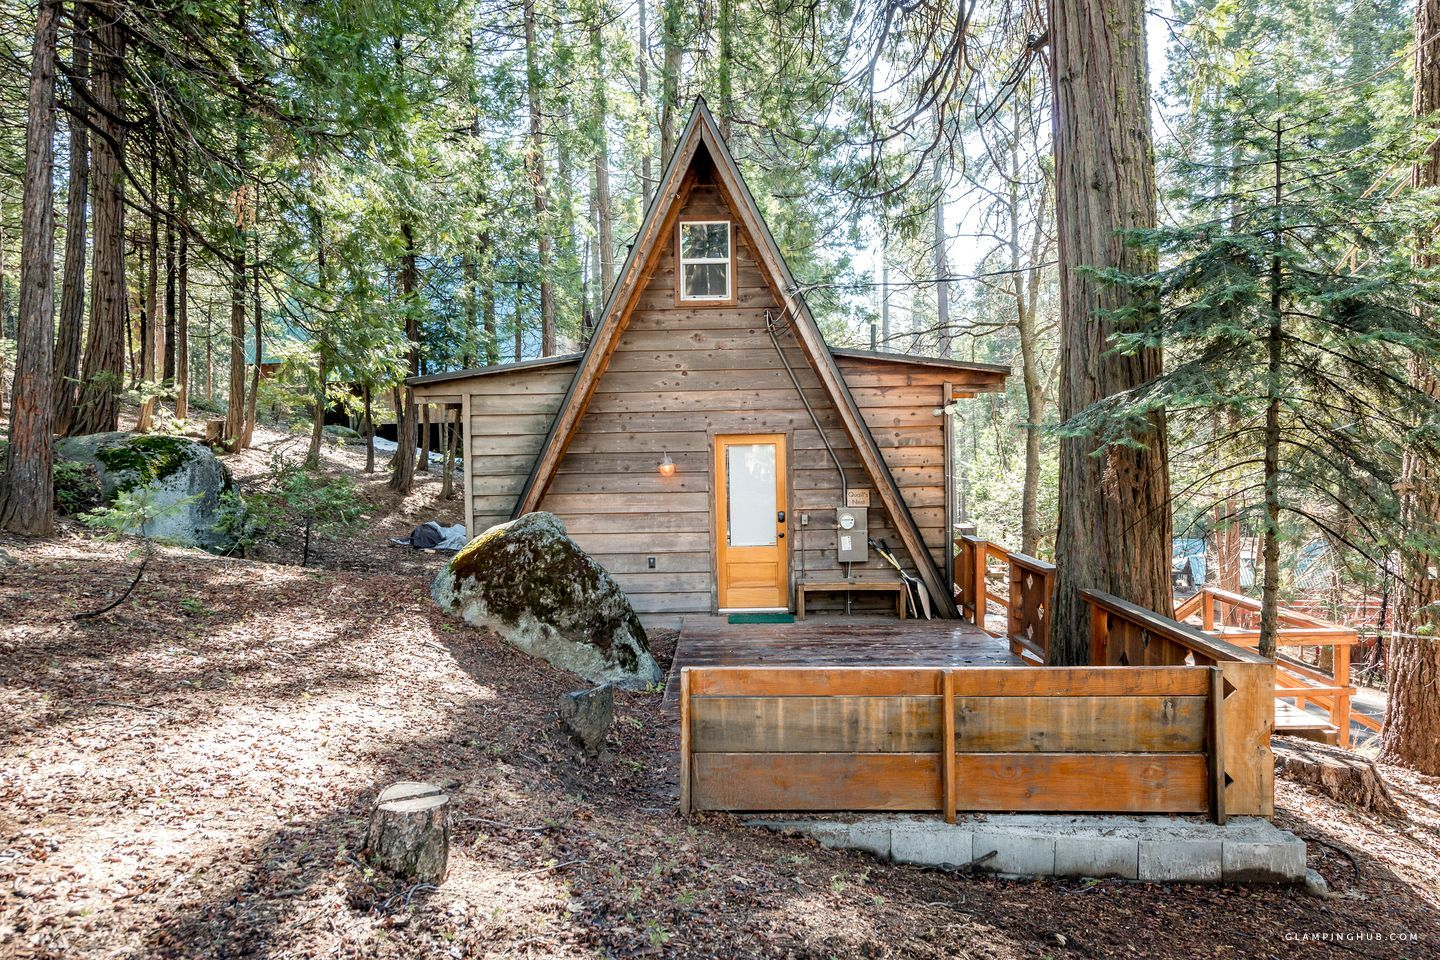 Rustic A Frame Cabin In The Woods Near Downtown Shaver Lake California In 2019 A Frame Cabin Shaver Lake Cabins In The Woods